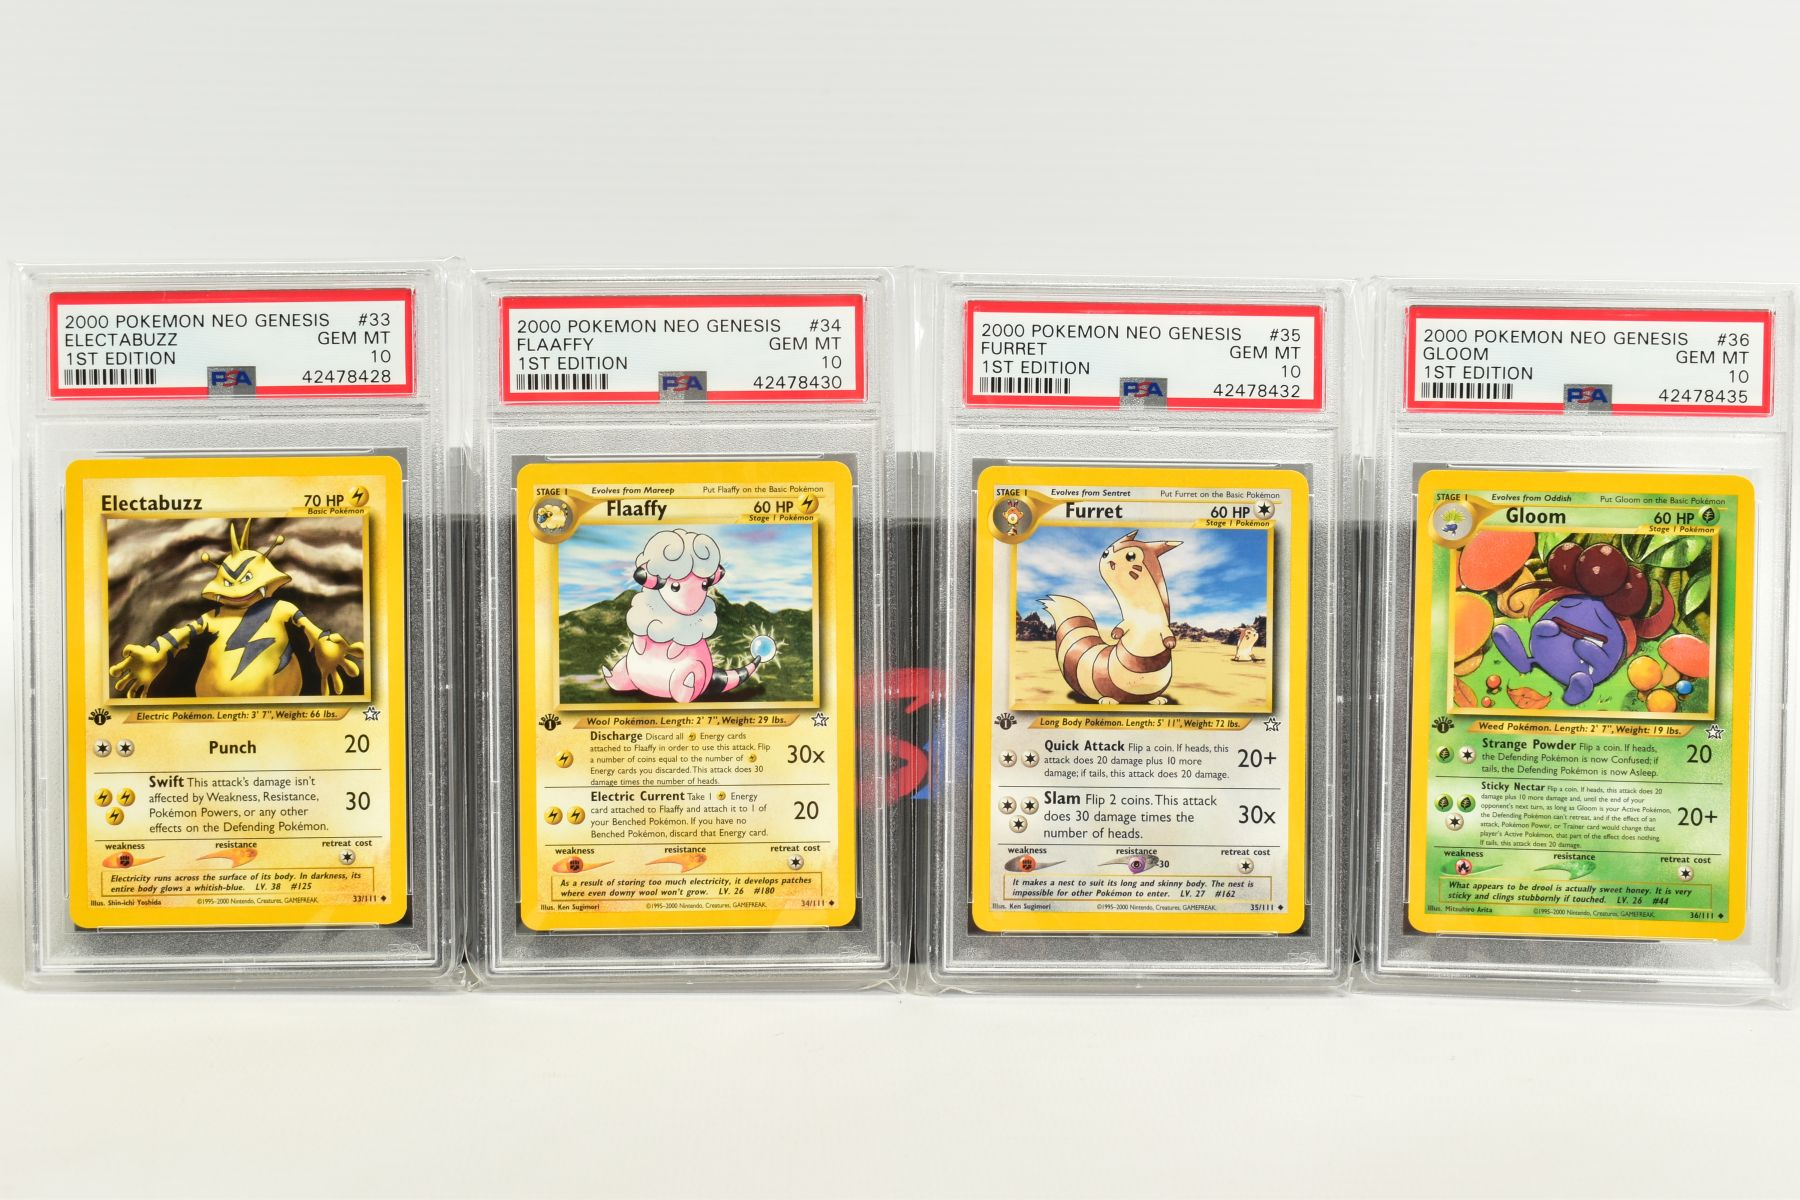 A QUANTITY OF PSA GRADED POKEMON 1ST EDITION NEO GENESIS SET CARDS, all are graded GEM MINT 10 and - Image 5 of 24